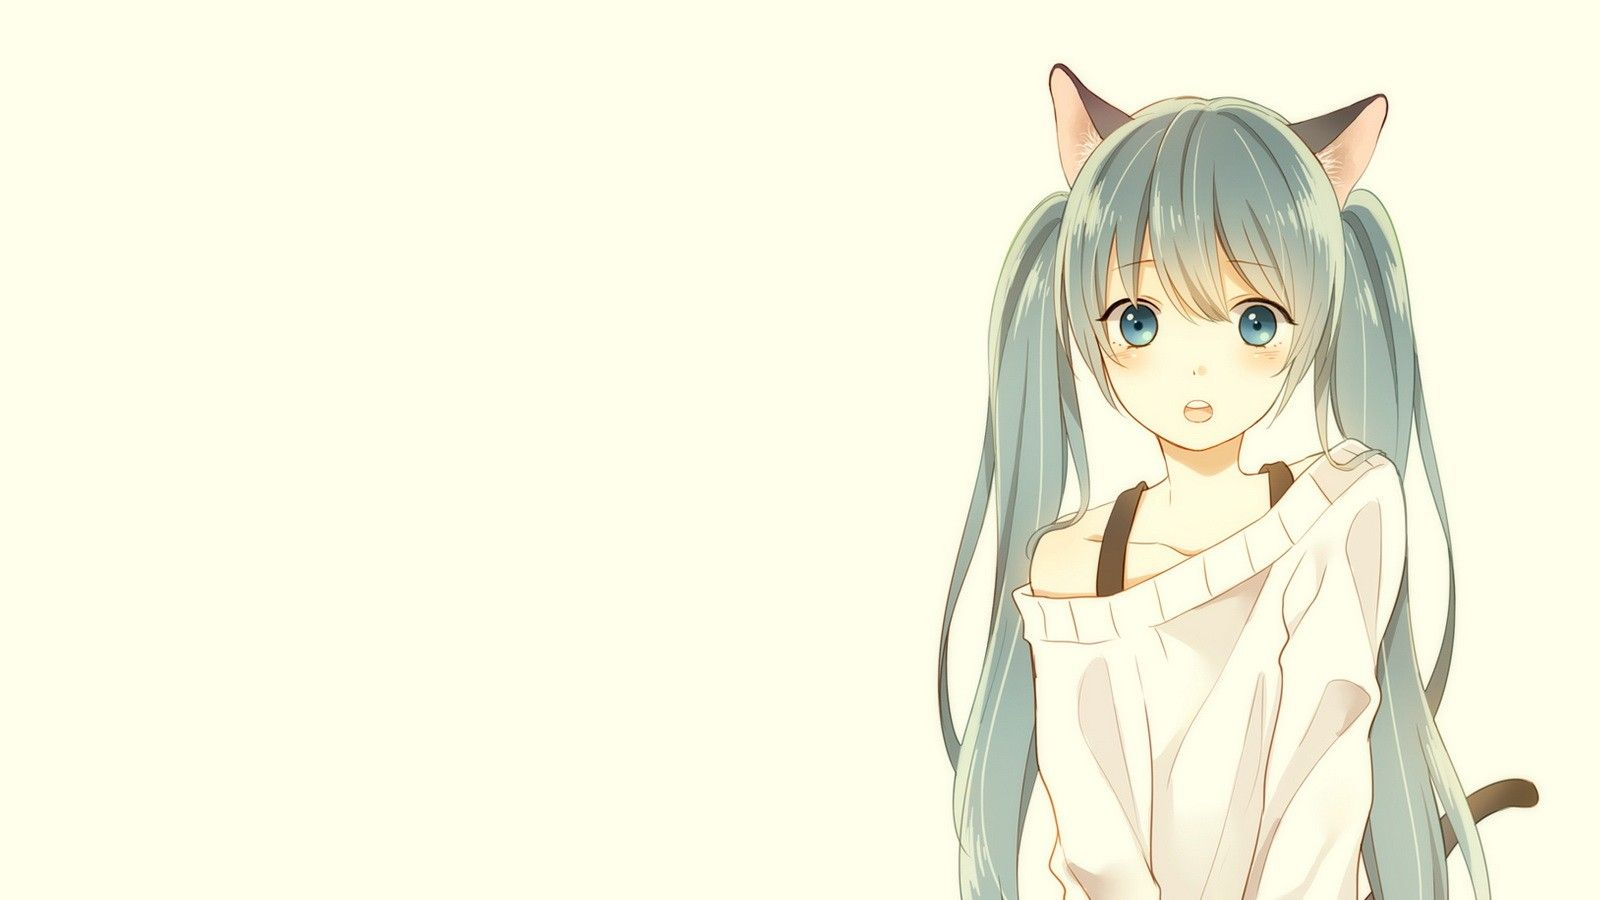 Anime Cat Girl Wallpapers Top Free Anime Cat Girl Backgrounds Wallpaperaccess